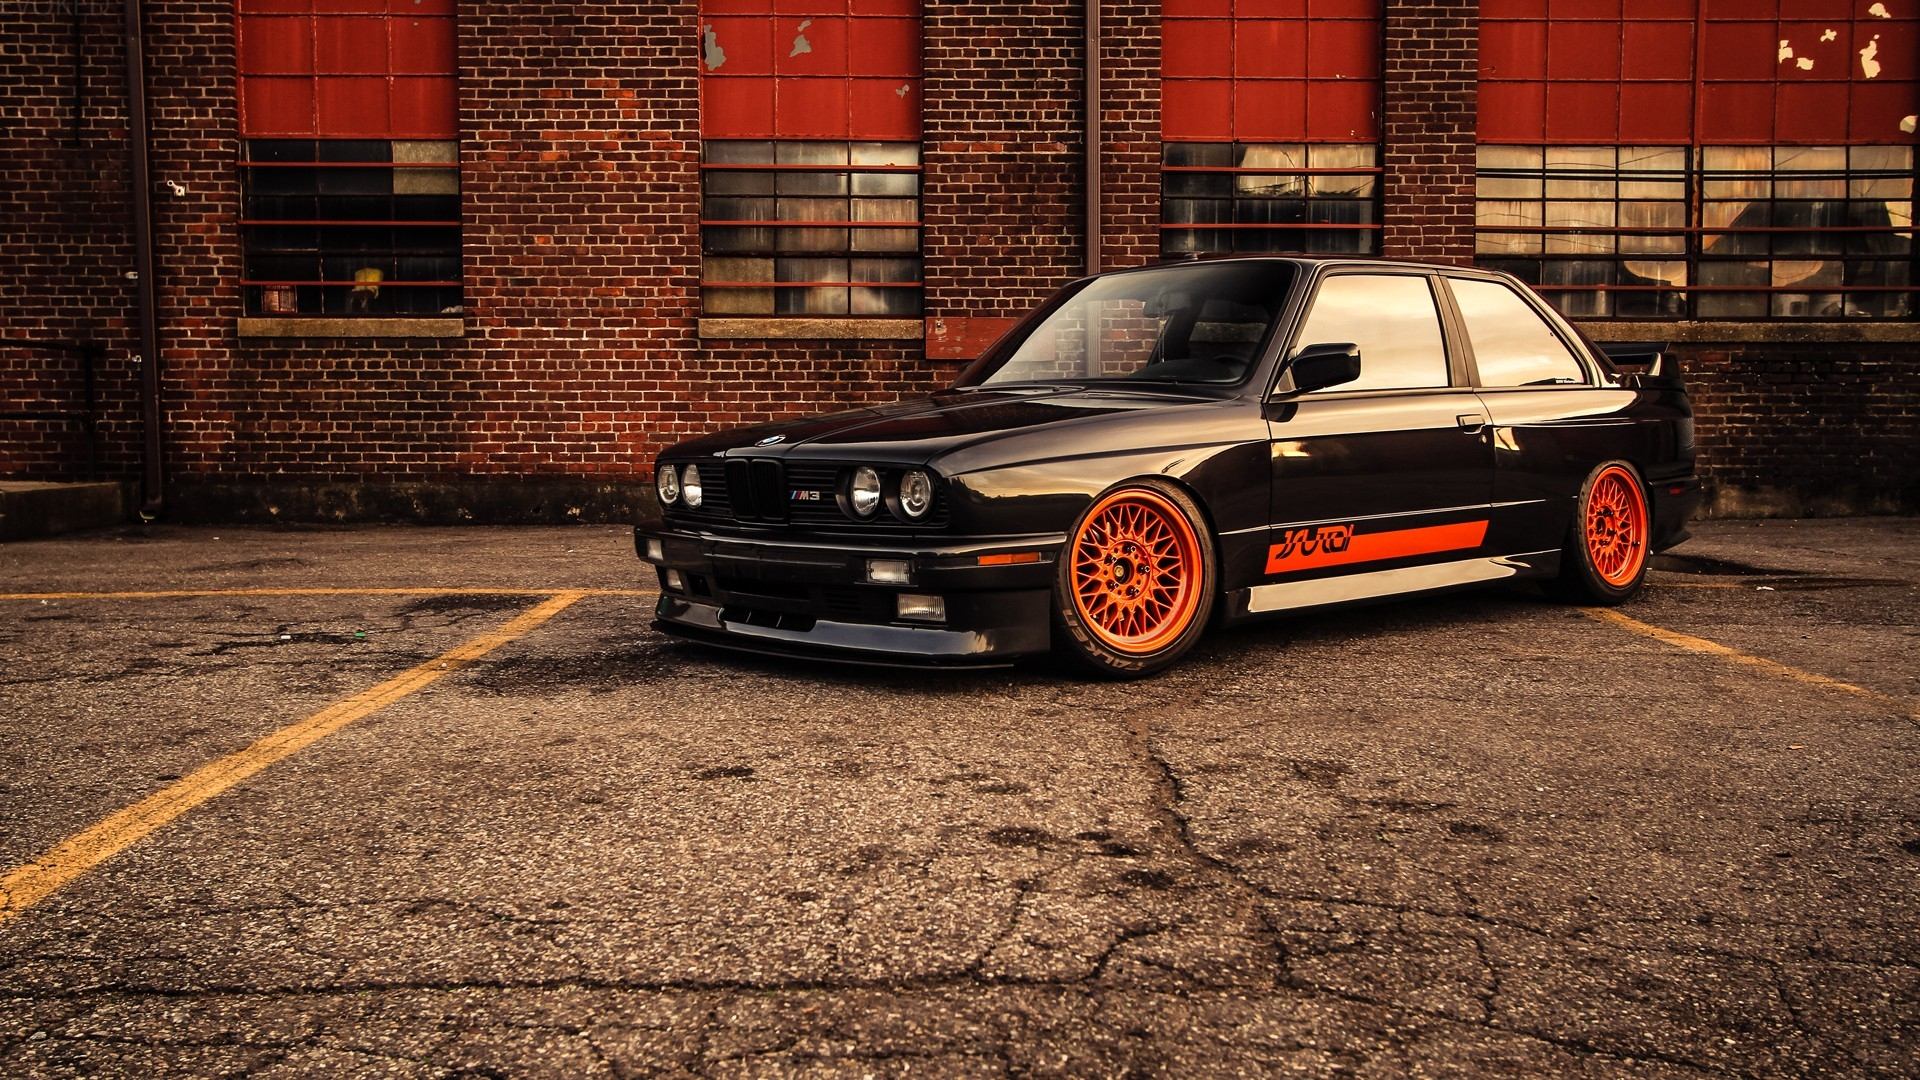 Bmw E30 Wallpapers Hd Pixelstalk Net